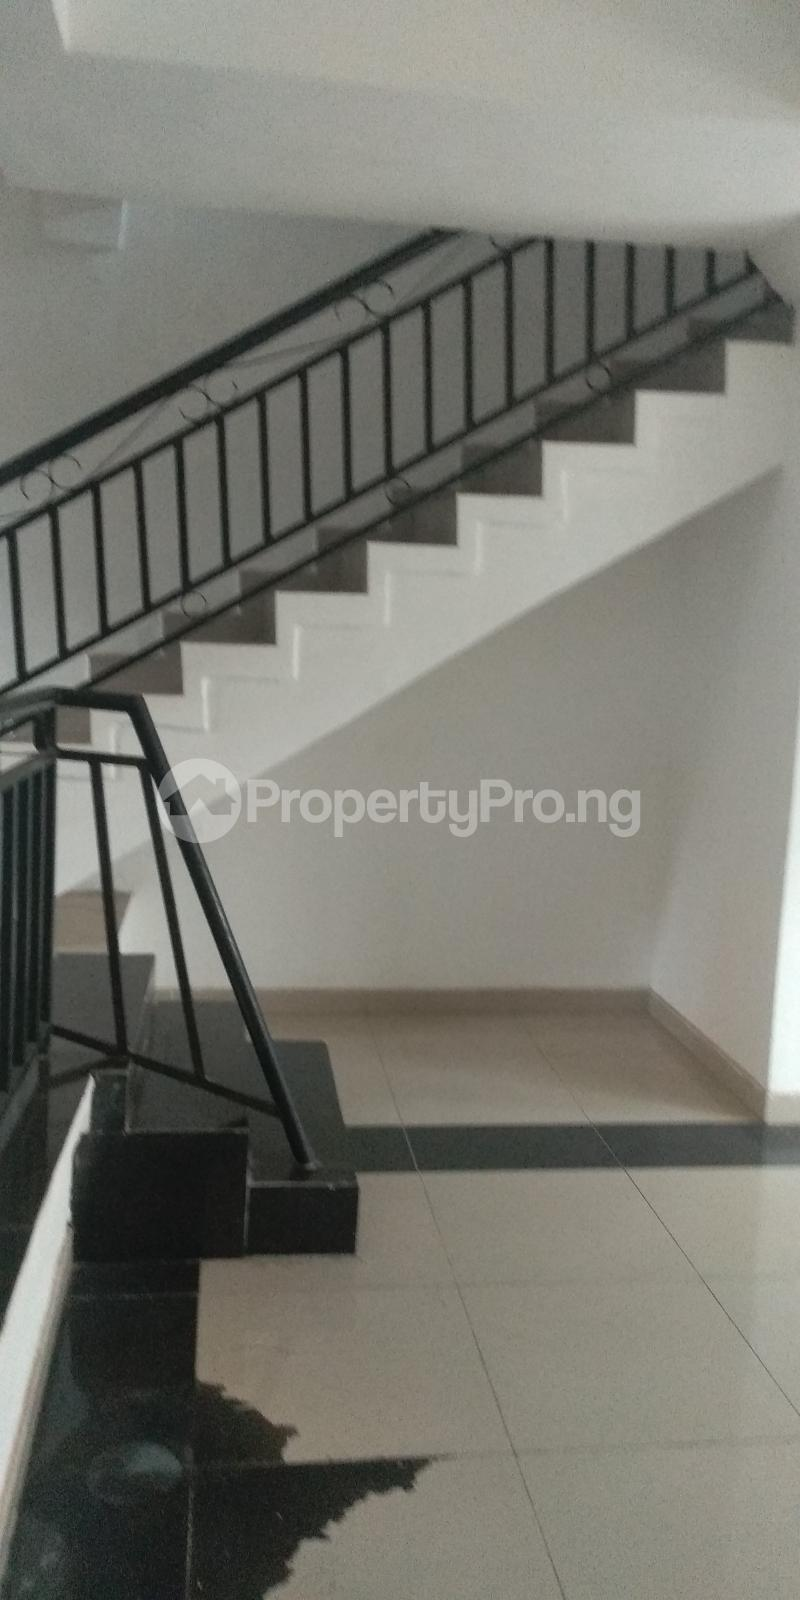 3 bedroom Terraced Duplex House for sale Gbolahun awe street magodo shangisha Magodo GRA Phase 2 Kosofe/Ikosi Lagos - 2